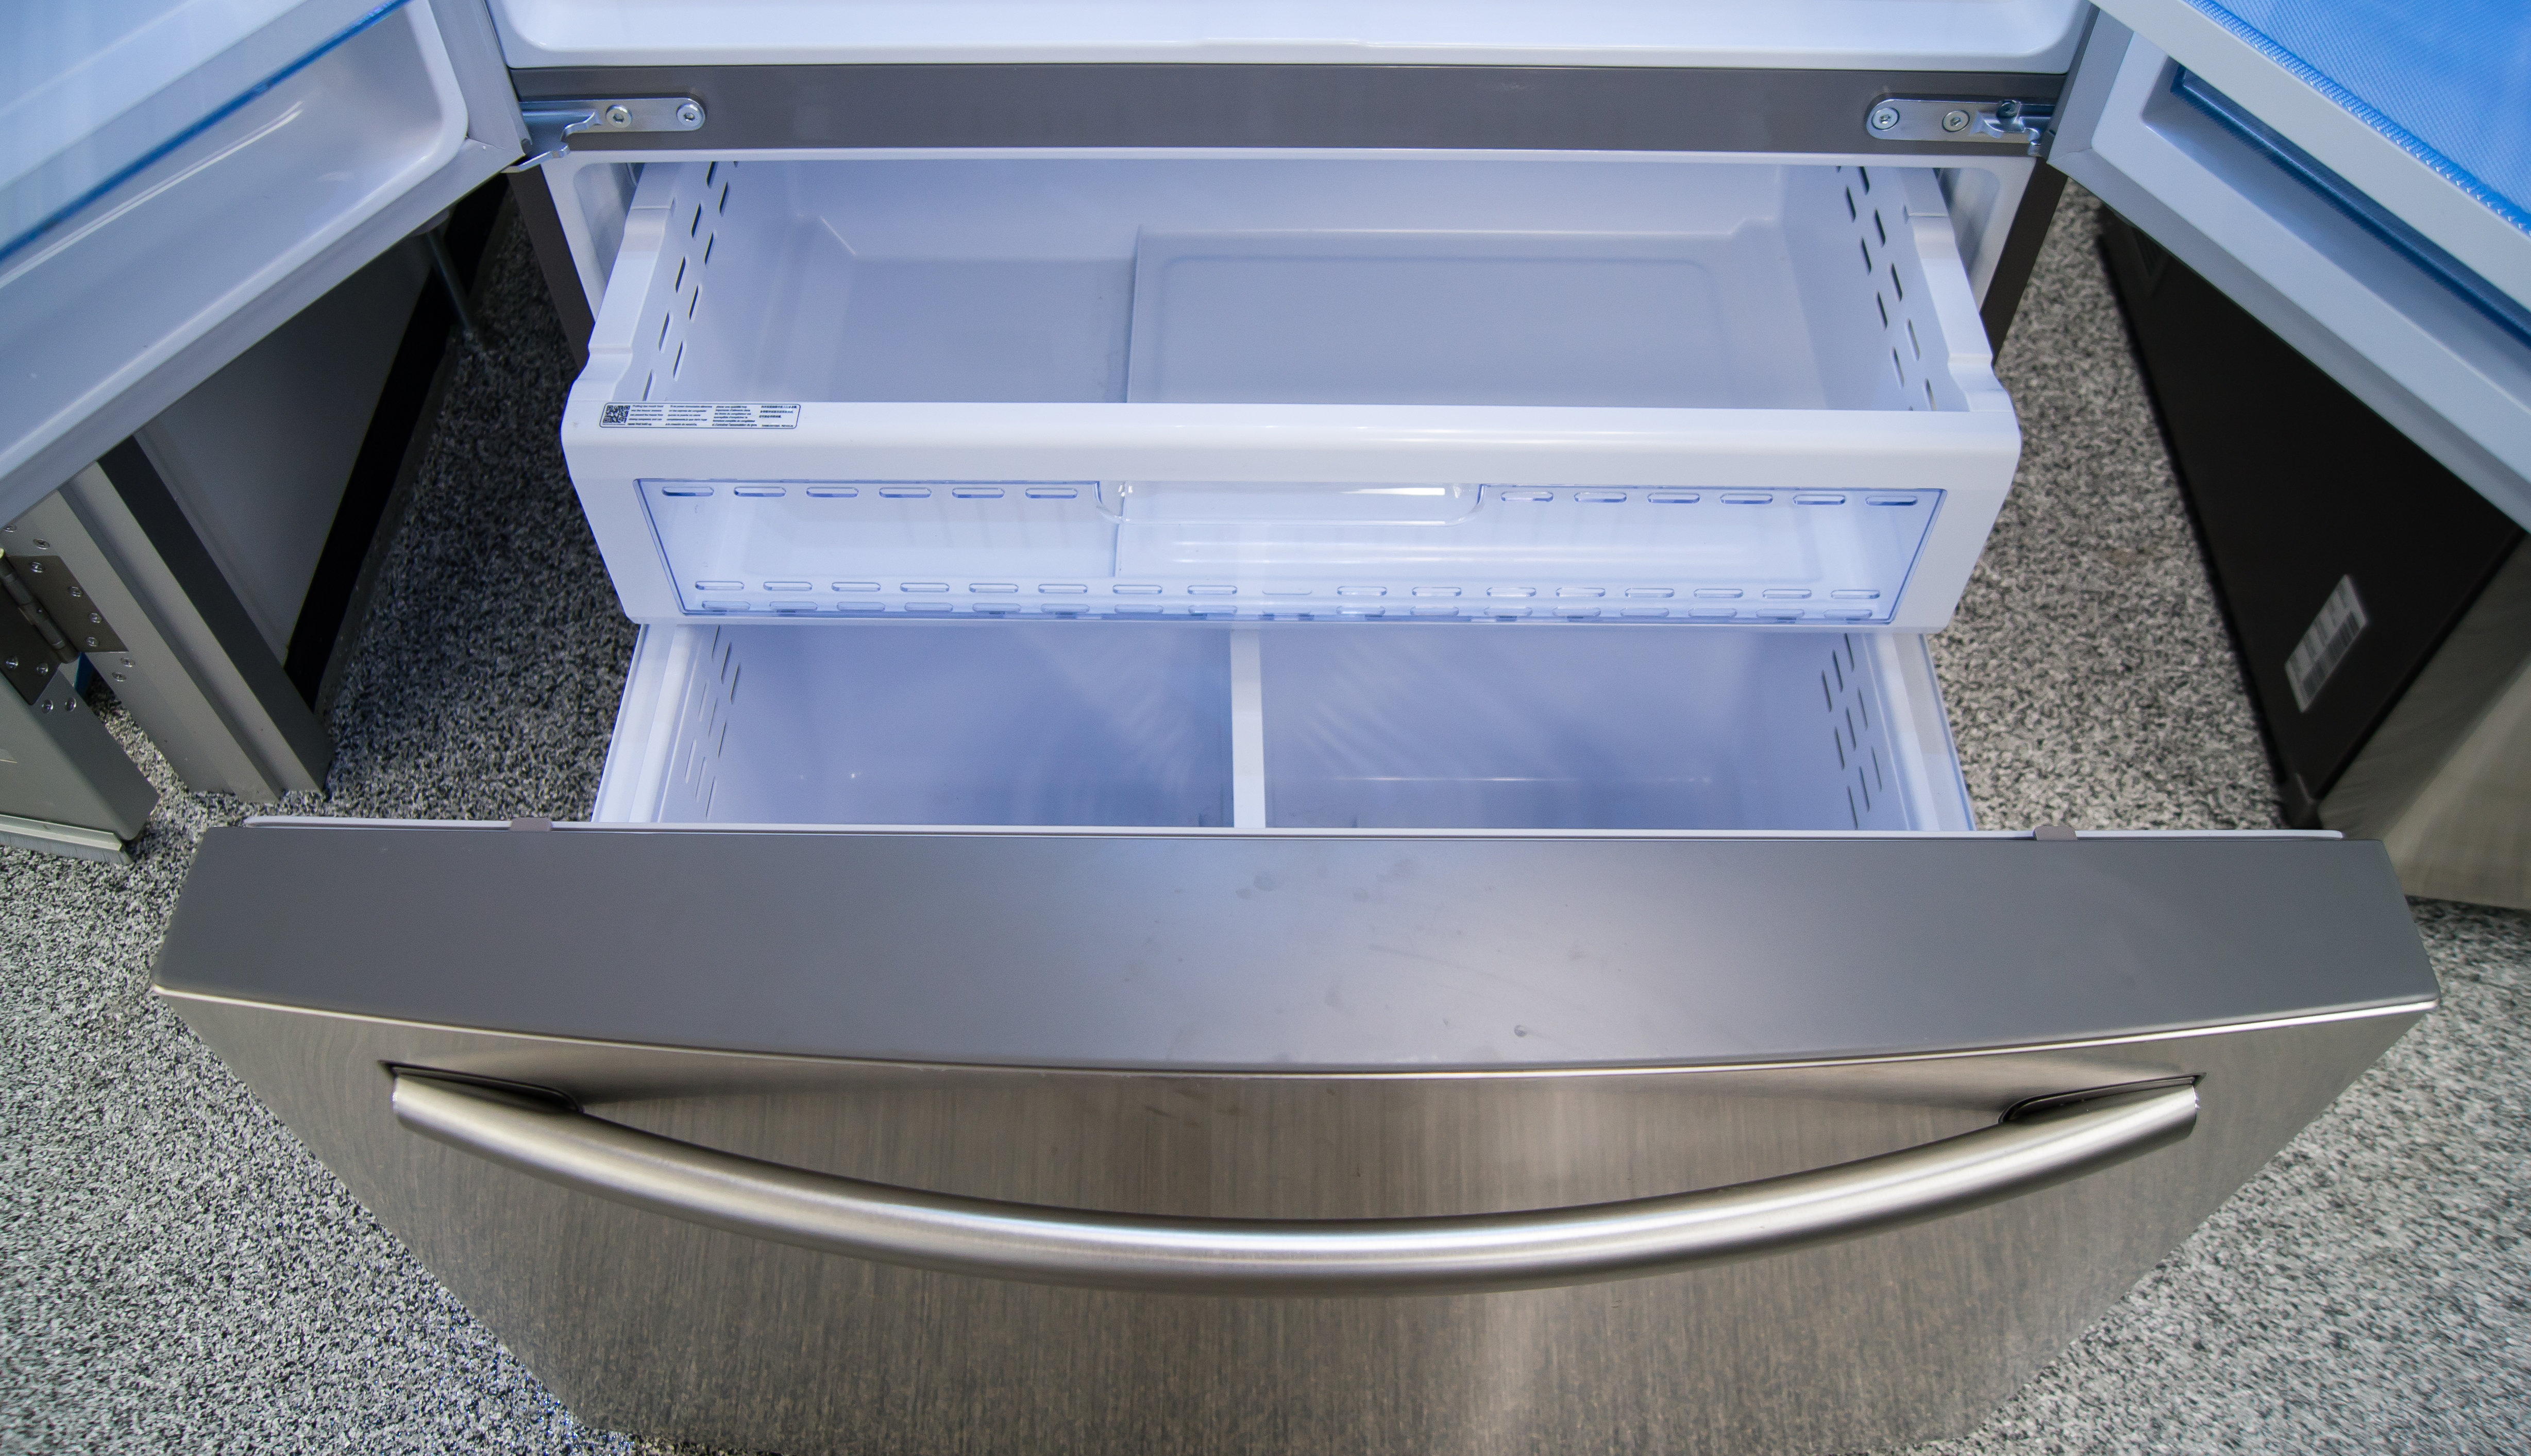 A basic pull-out freezer with two levels of storage. There's a shallow shelf hidden just inside the door of the Samsung RF28HDEDBSR.